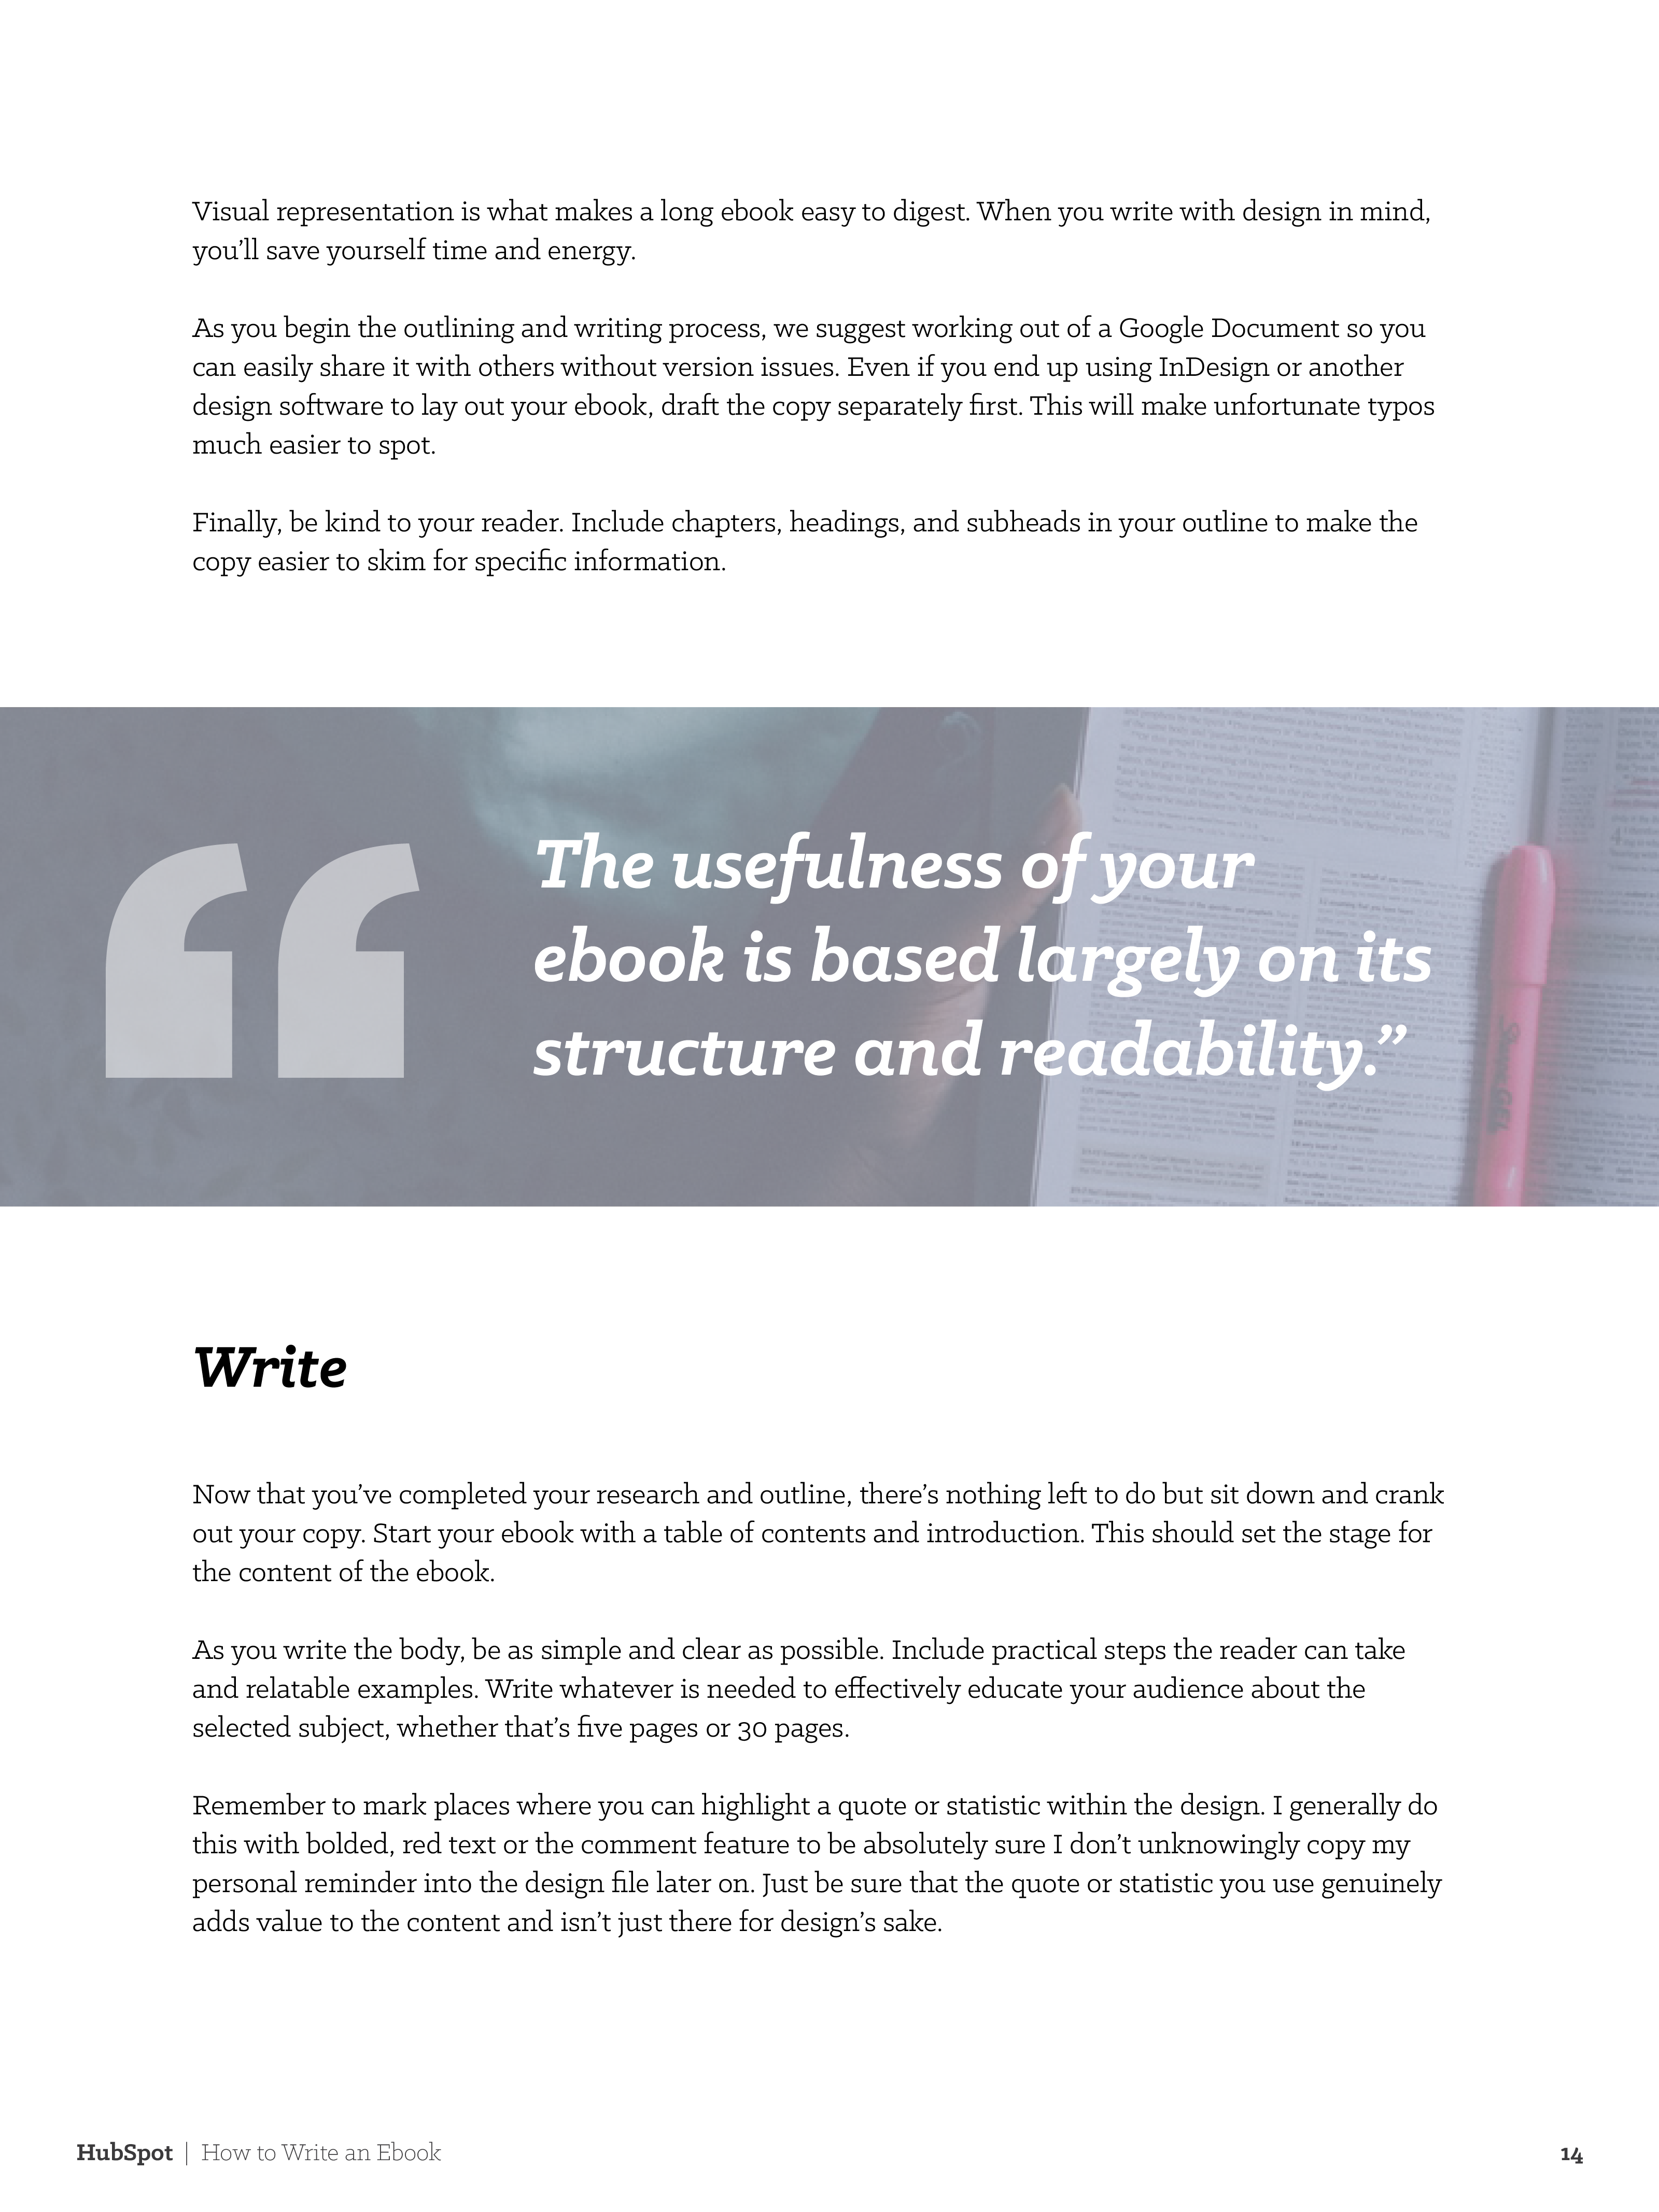 How_to_Write_an_Ebook14.png